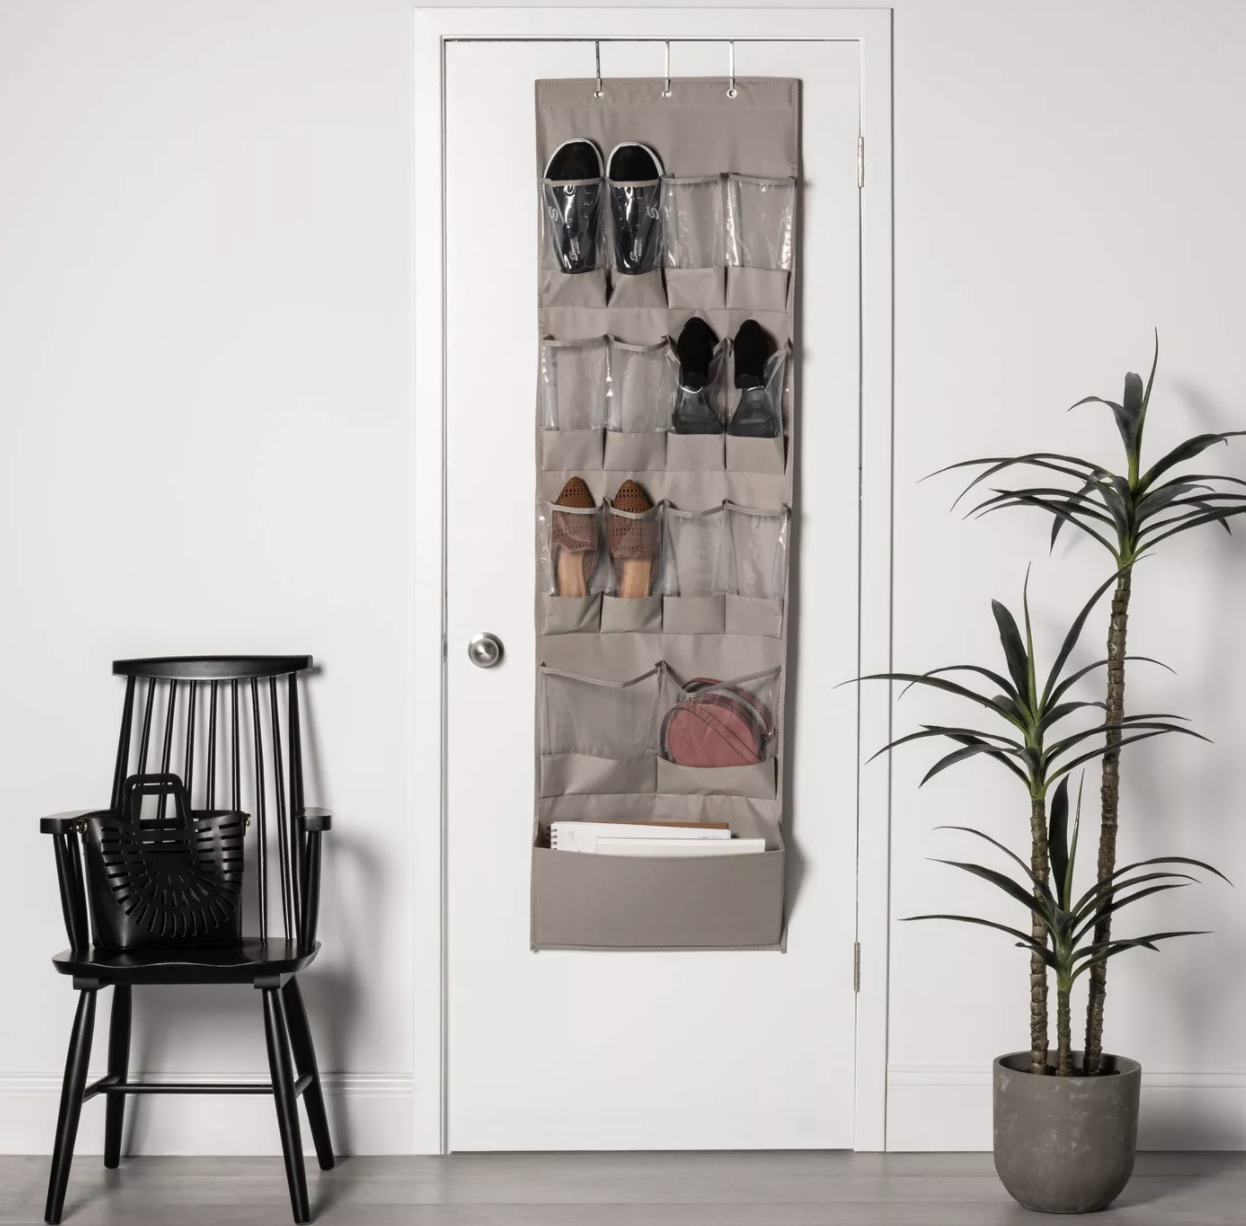 Over-the-door organizer with shoes and various items placed inside